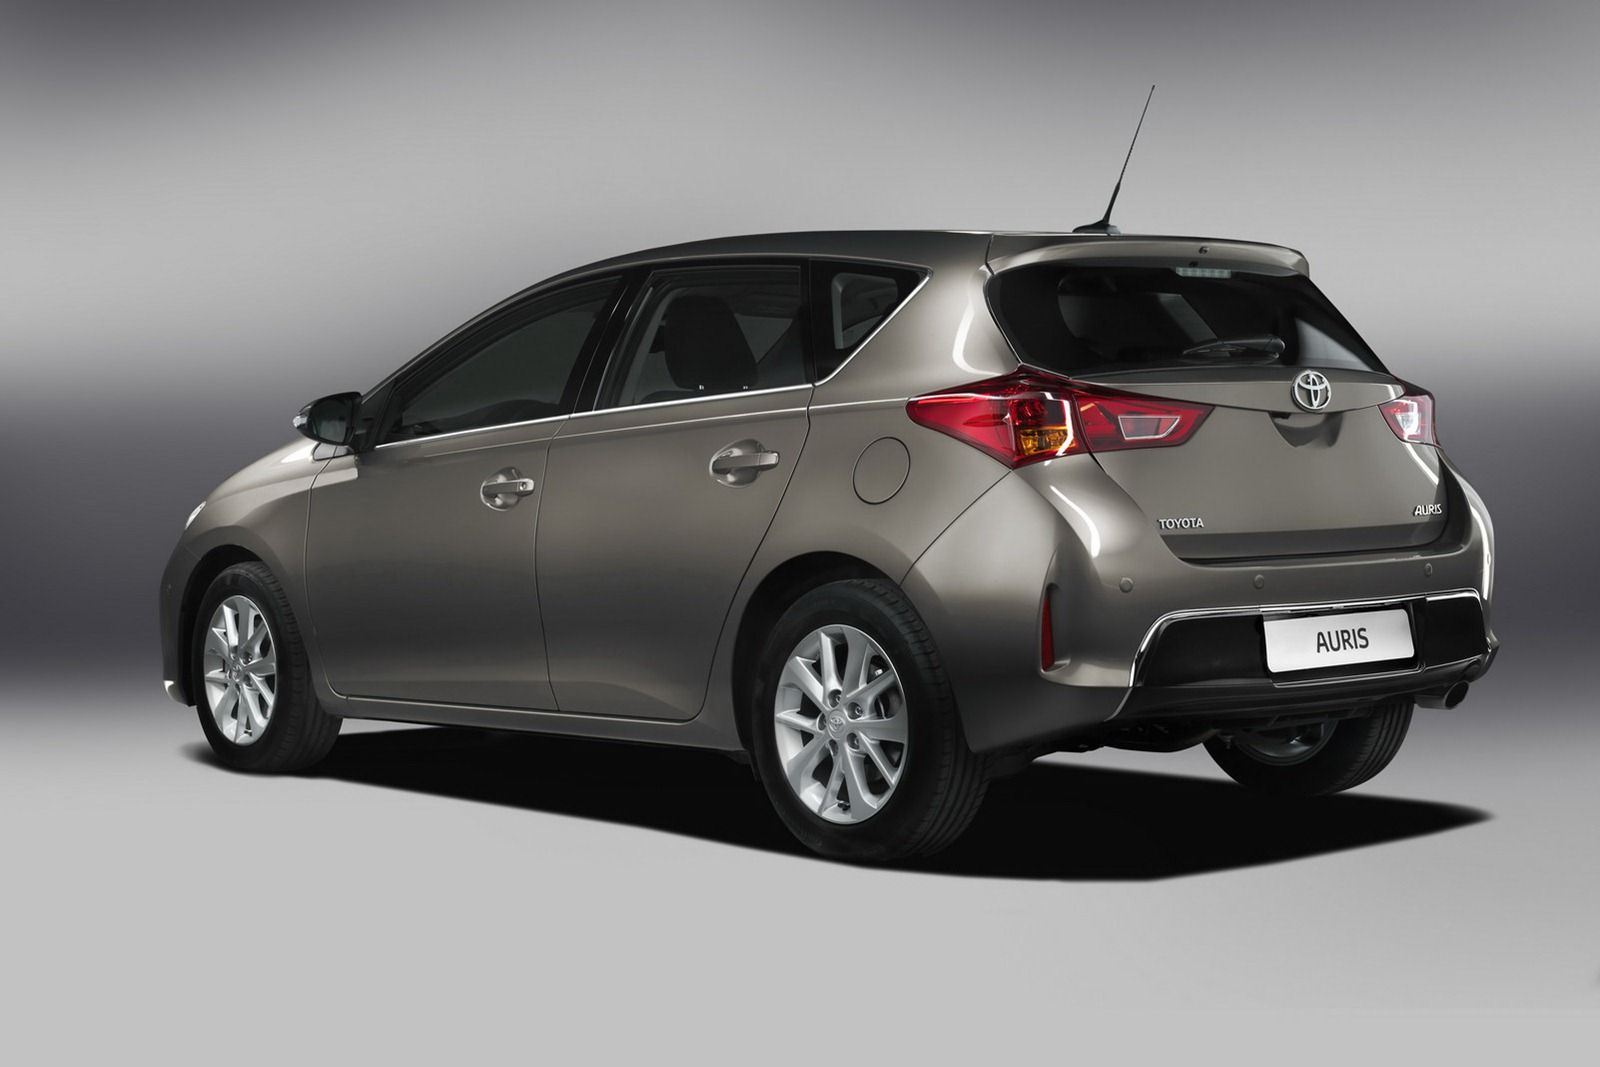 2013 toyota auris c segment hatchback unveiled image 126253. Black Bedroom Furniture Sets. Home Design Ideas